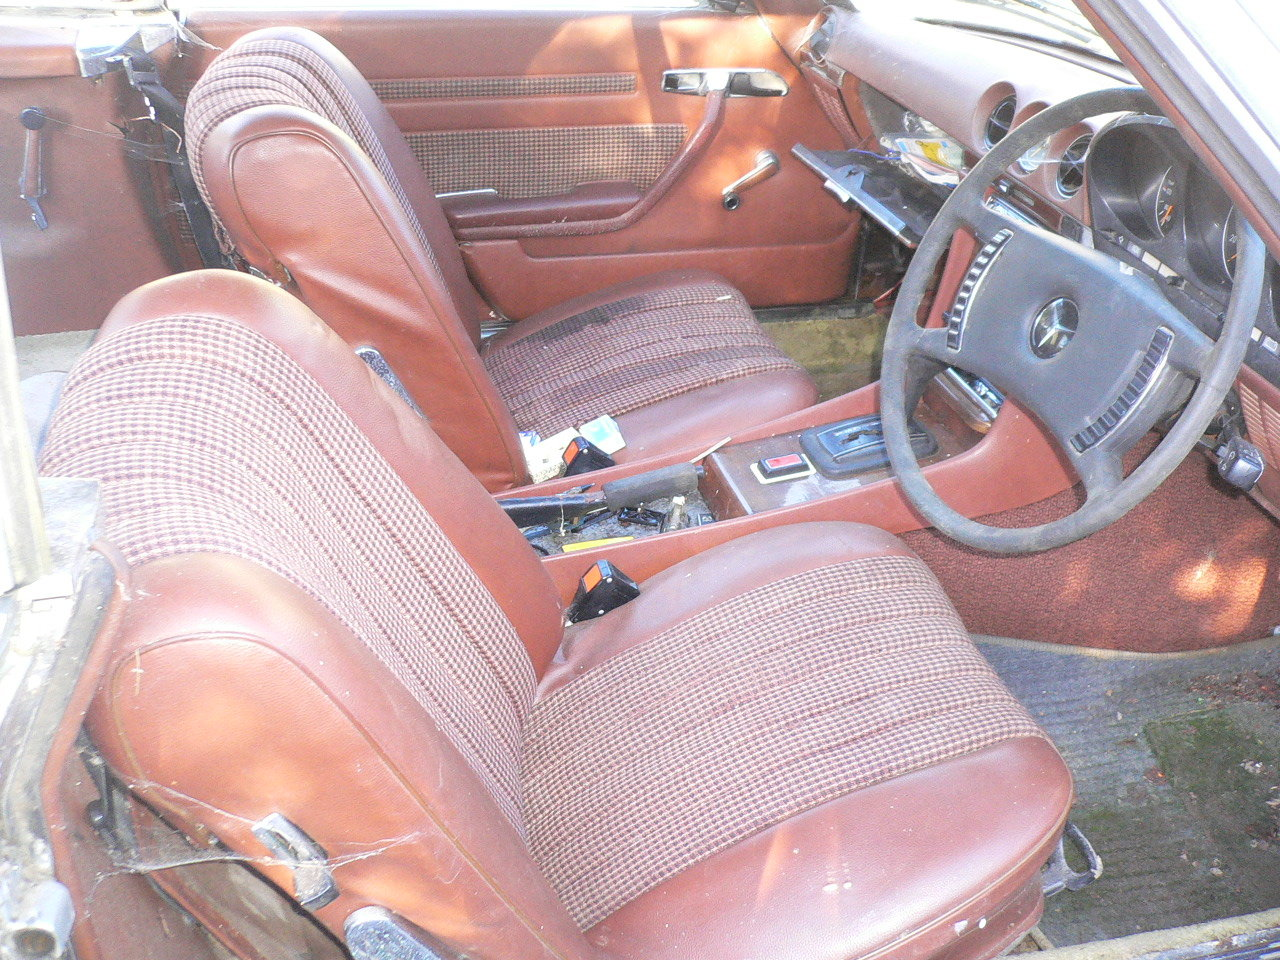 1973 mercedes sl 350 spares or repair  For Sale (picture 3 of 5)